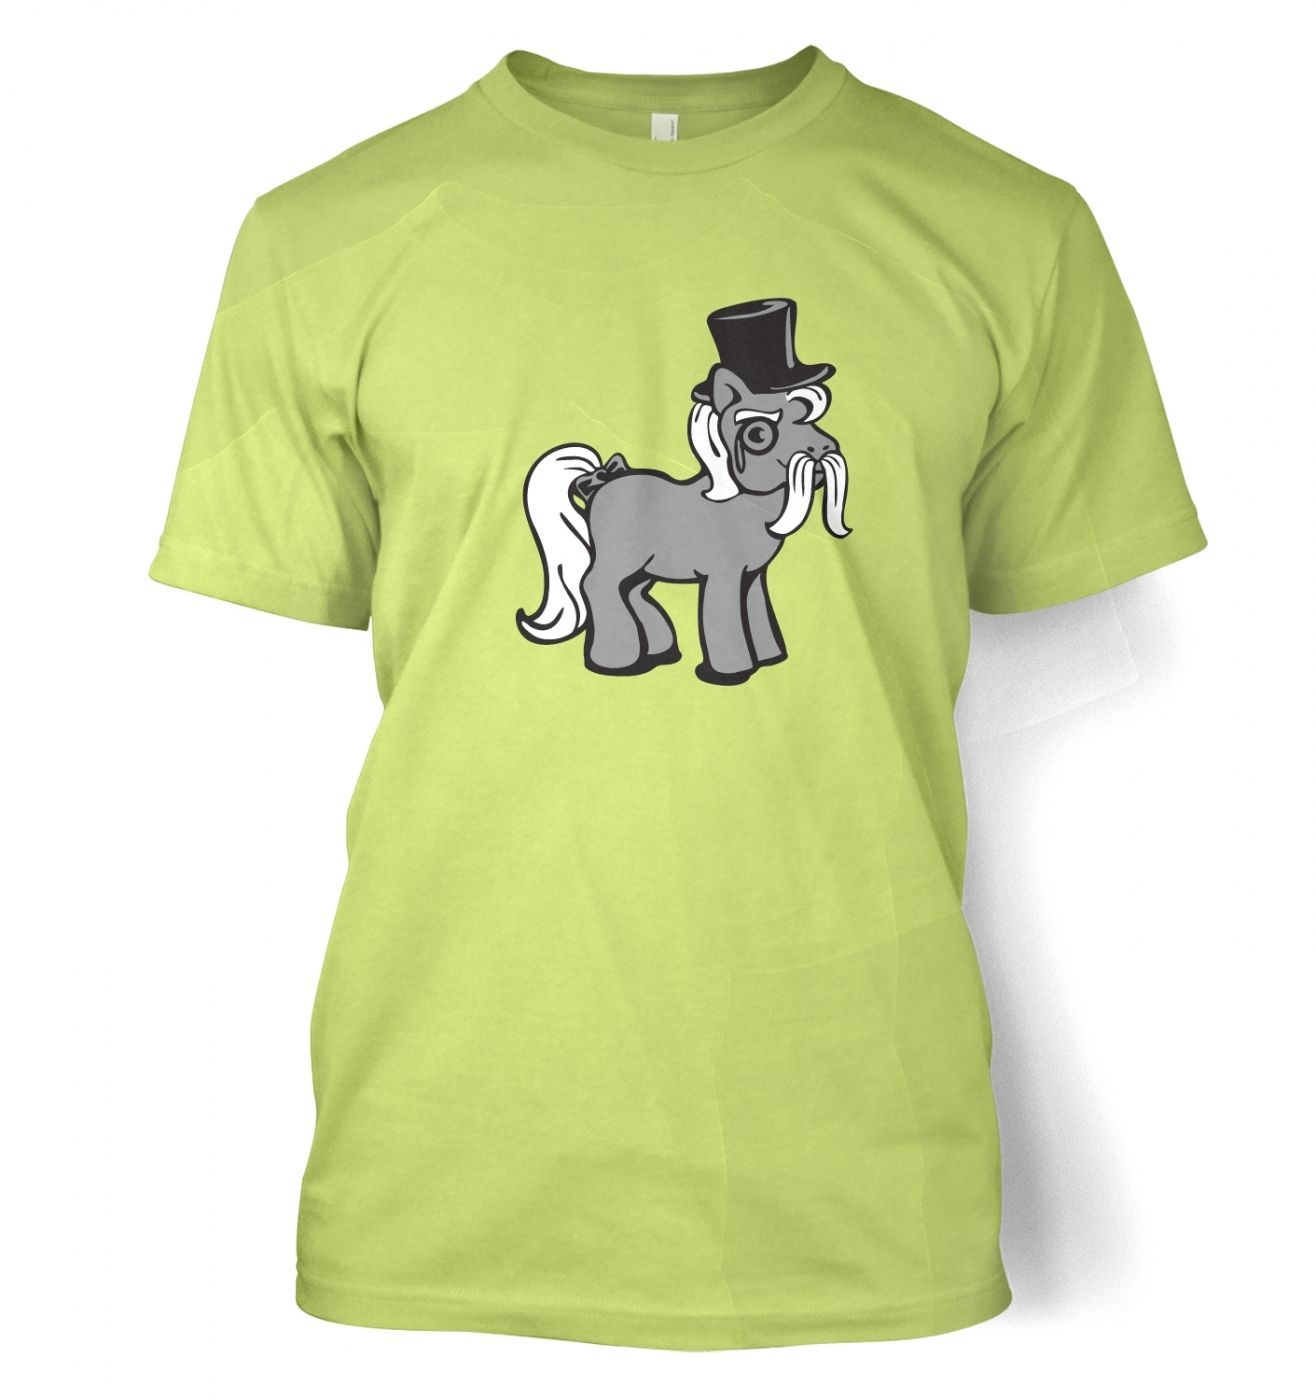 Top Hat Pony t-shirt